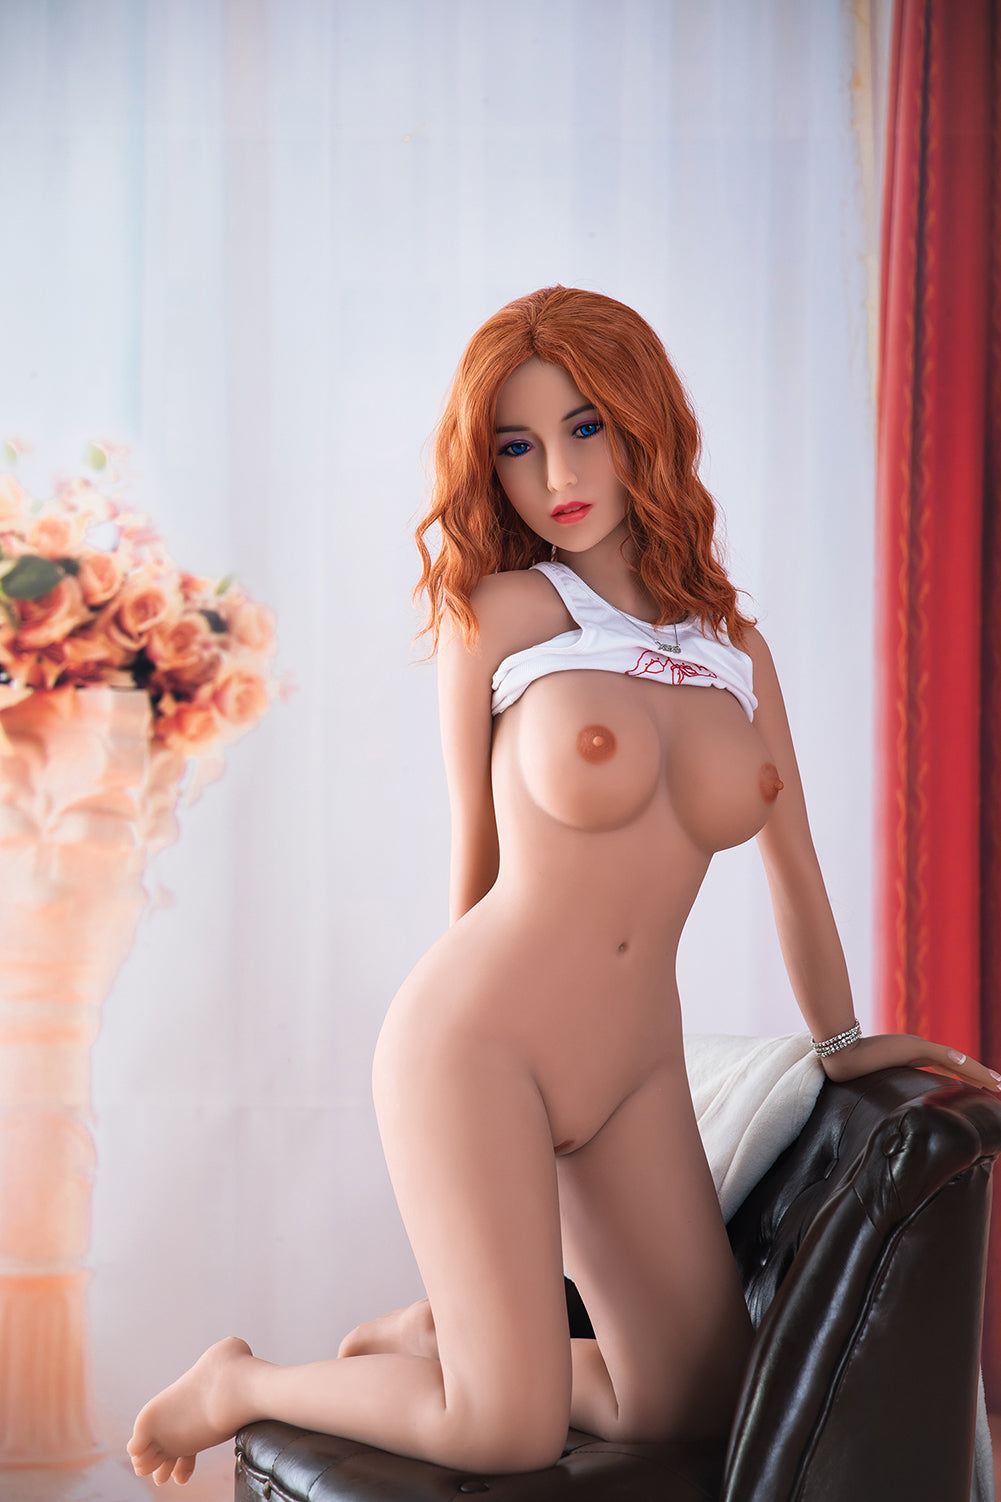 😋 Criza - Print Ad Model Sexy Sex Doll From Vacaville, California